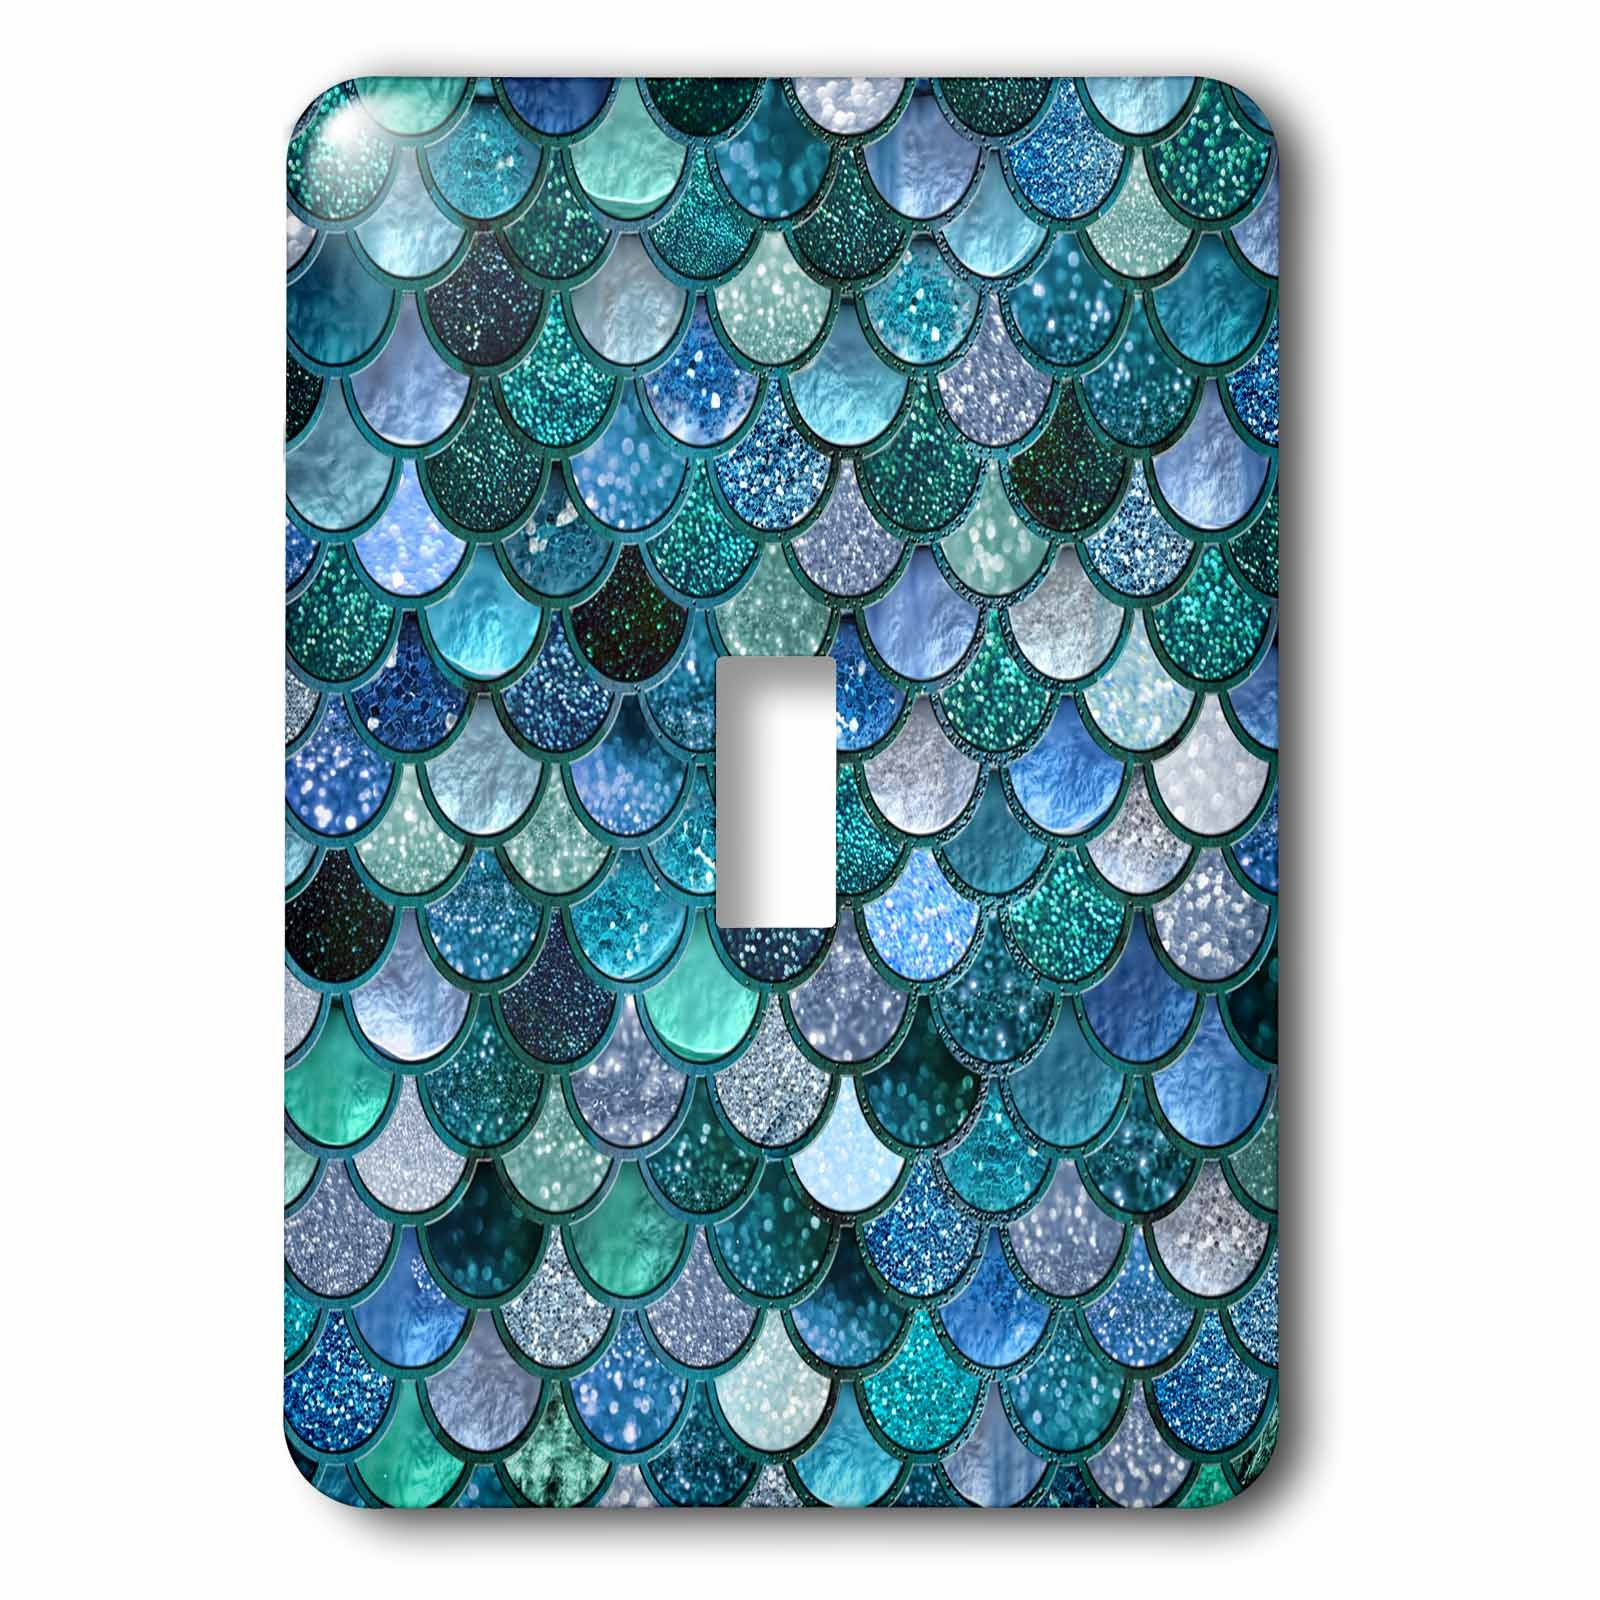 3dRose (lsp_272861_1) Single Toggle Switch (1) Multicolor Girly Trend Blue Luxury Elegant Mermaid Scales Glitter